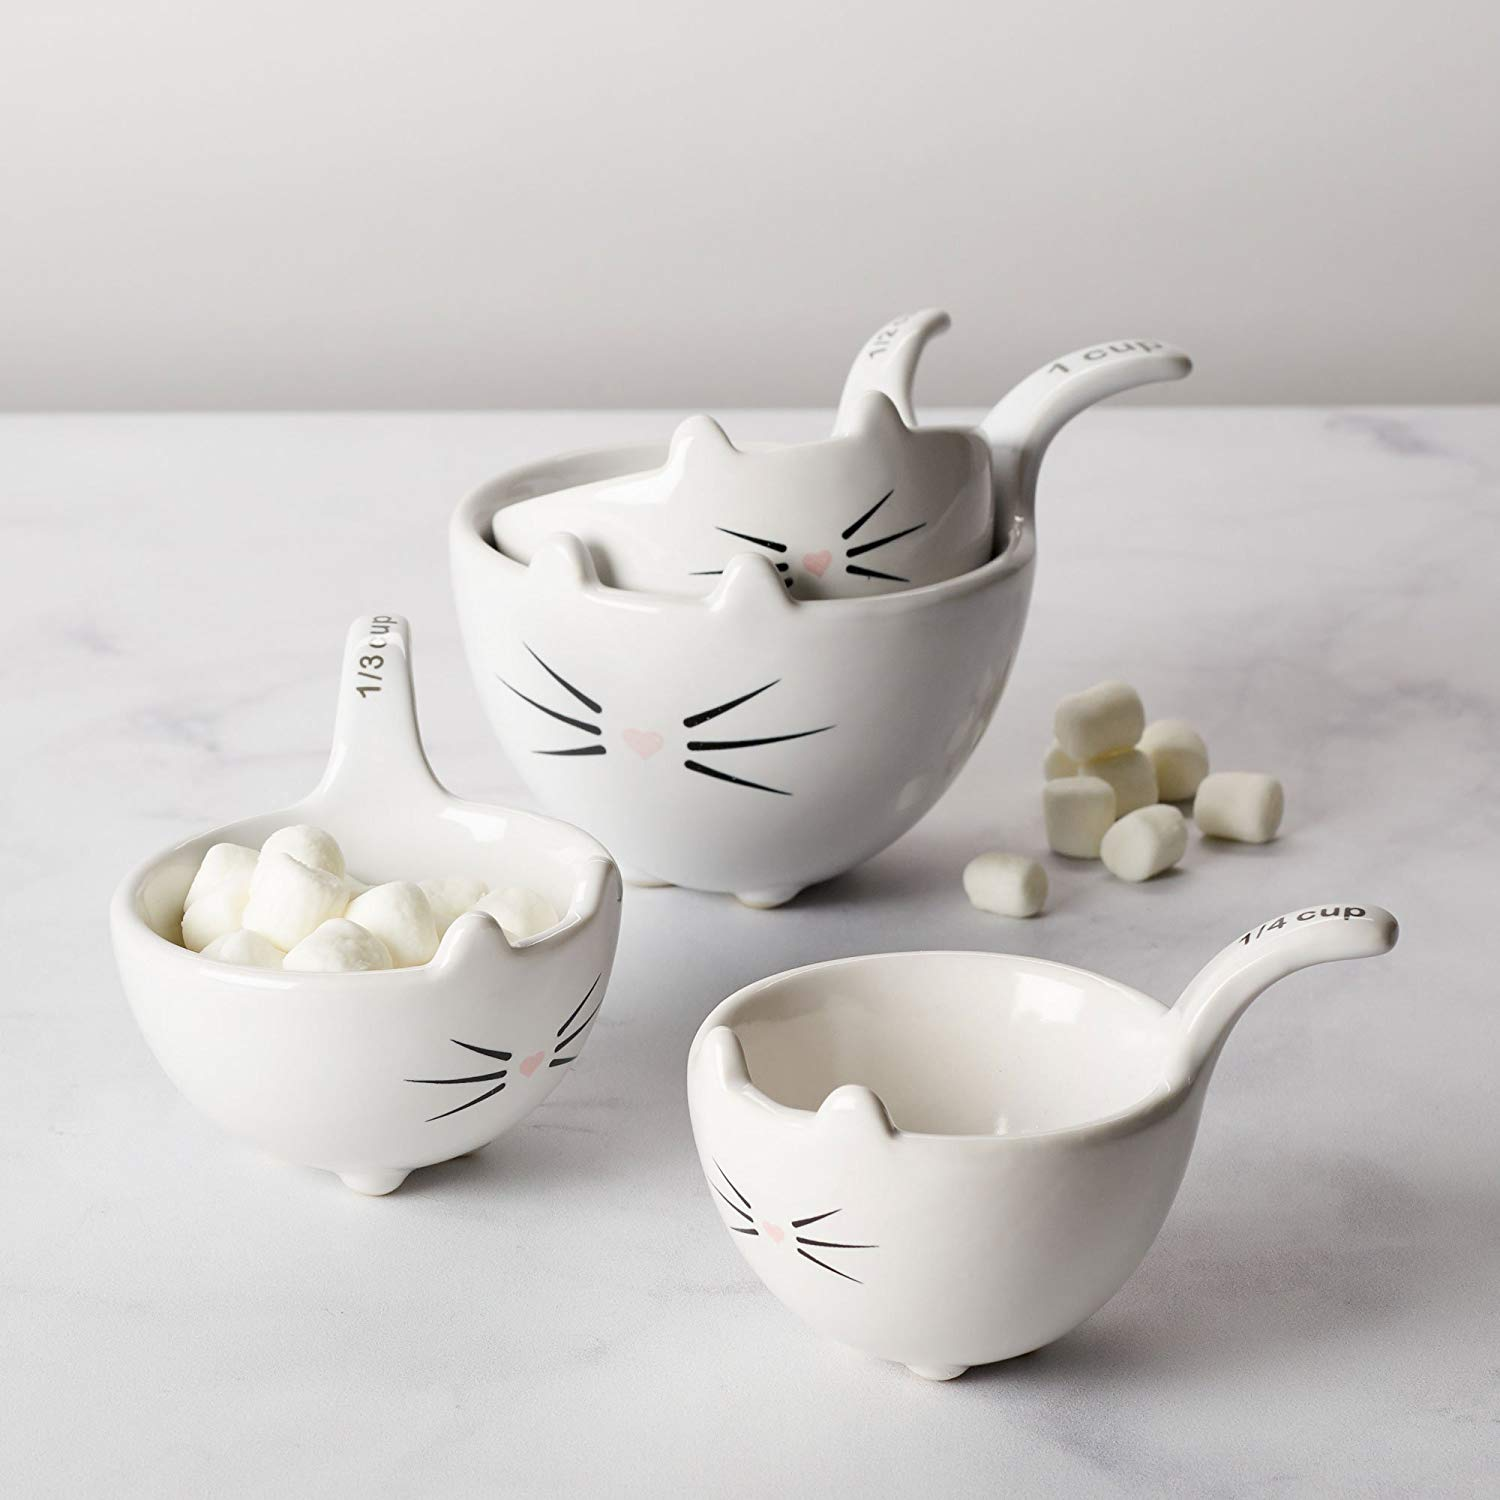 20 Amazon Kitchen Items That Are Almost Too Cute To Cook With!